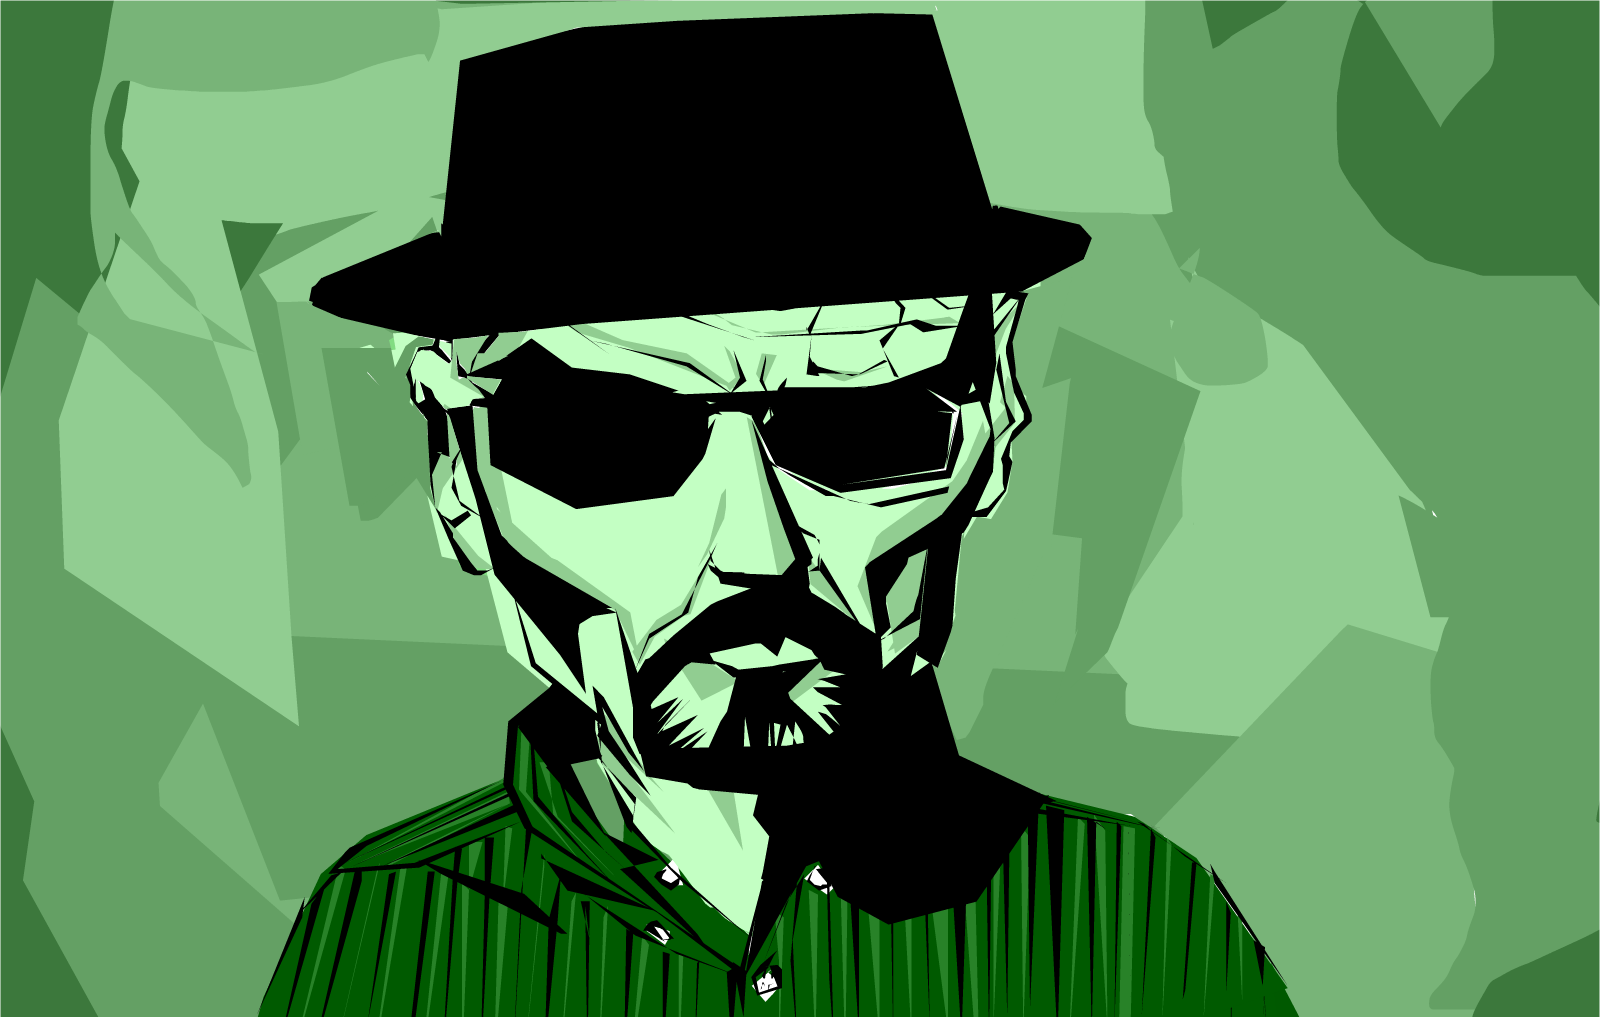 Walter White from Breaking Bad - licensed CC-BY by thewalkingdude